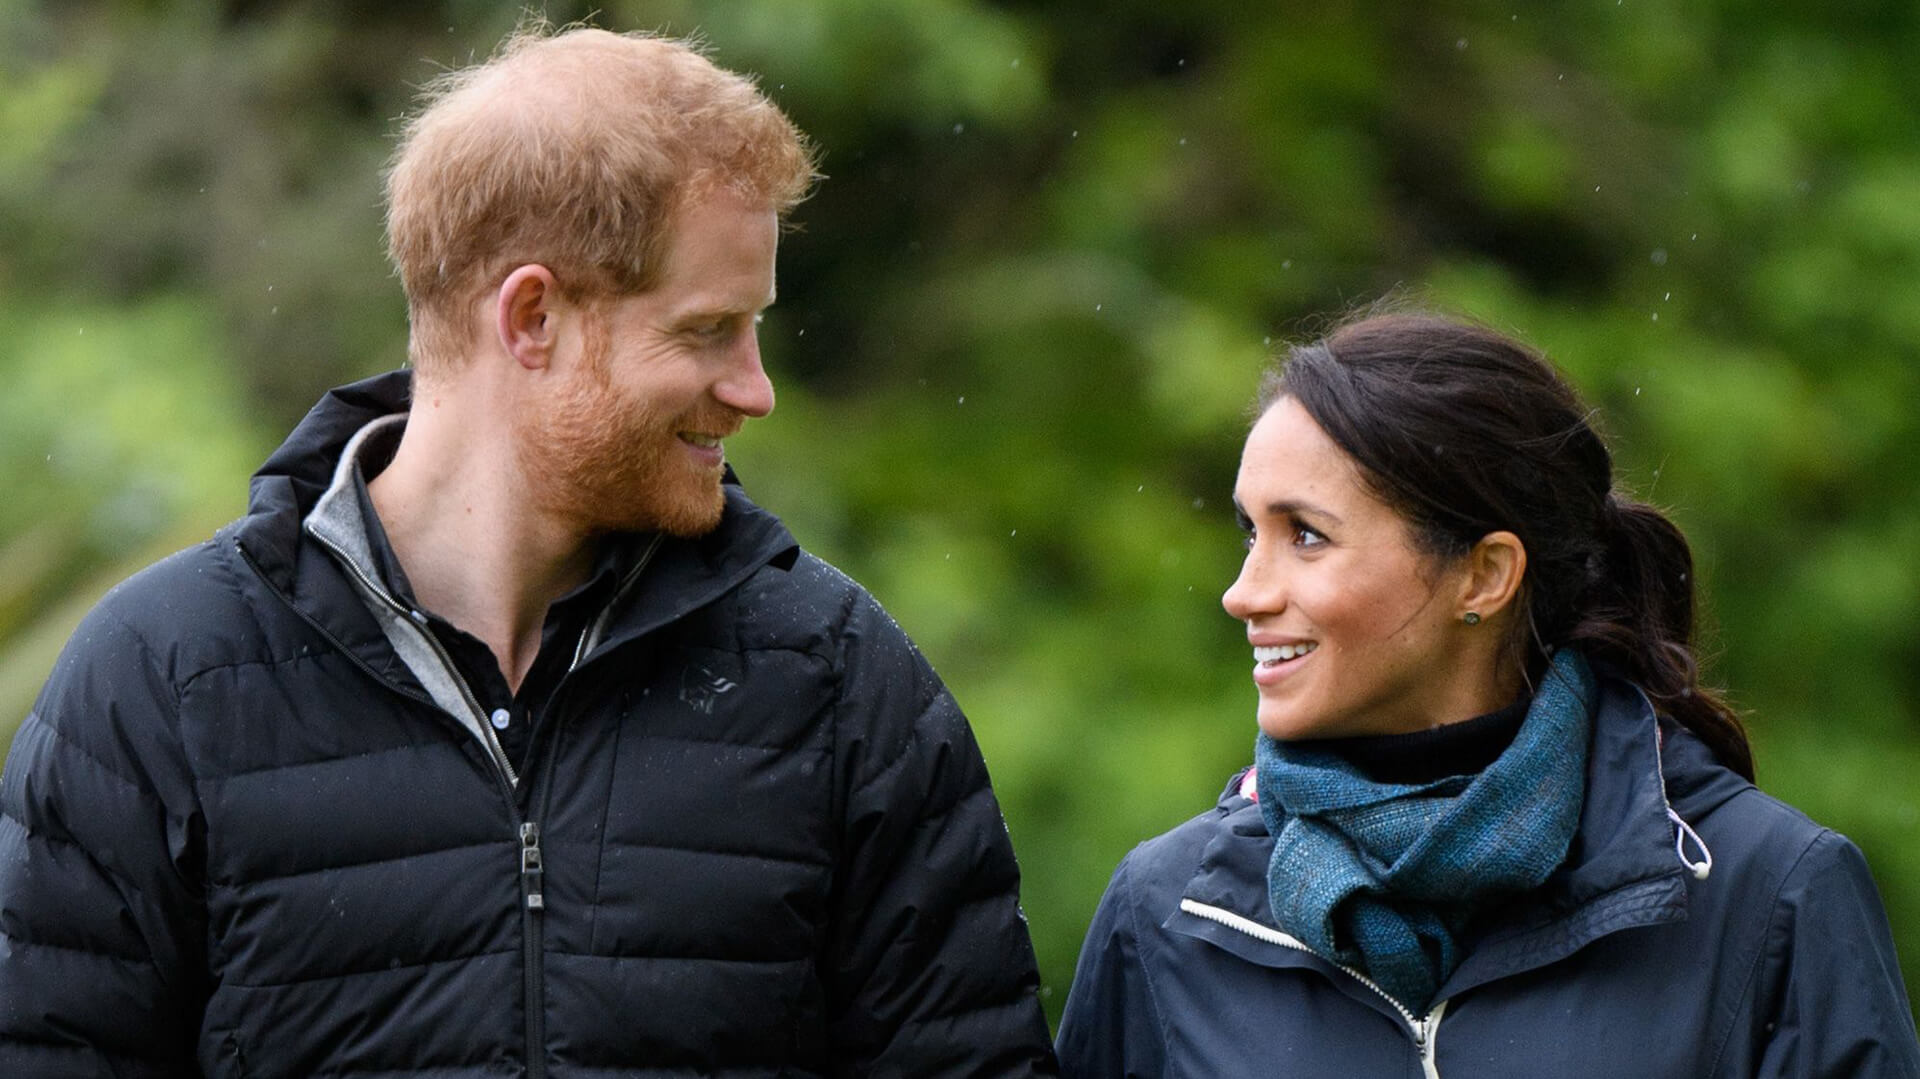 Harry and Meghan's Oprah Interview Could Spark 'Super Bowl-Style' Ads with $100k Price Tags